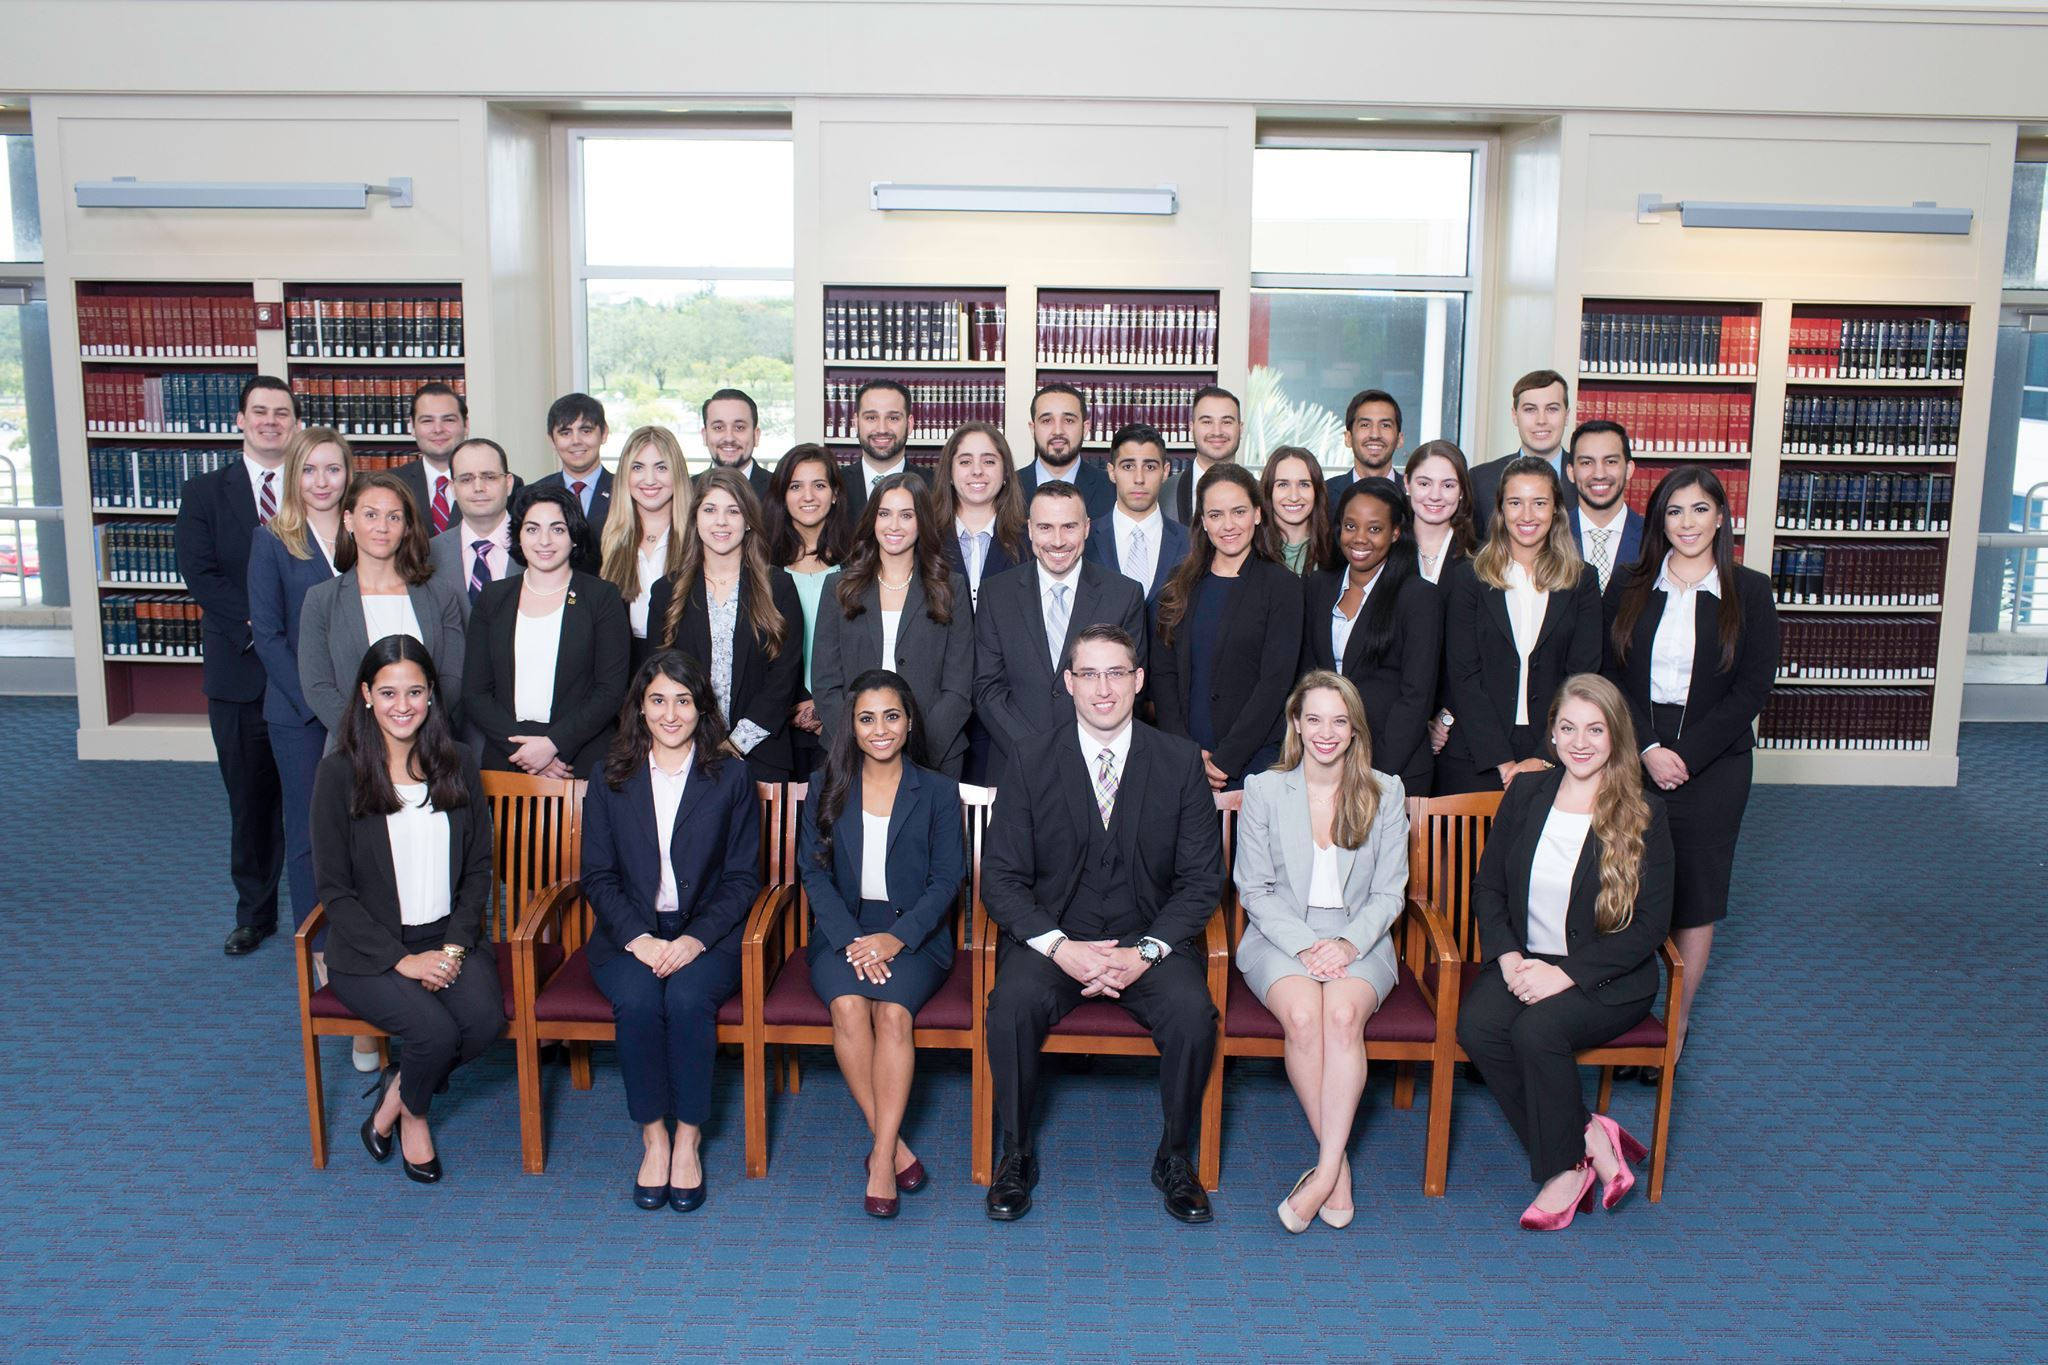 FIU Law Review Members 2017-2018